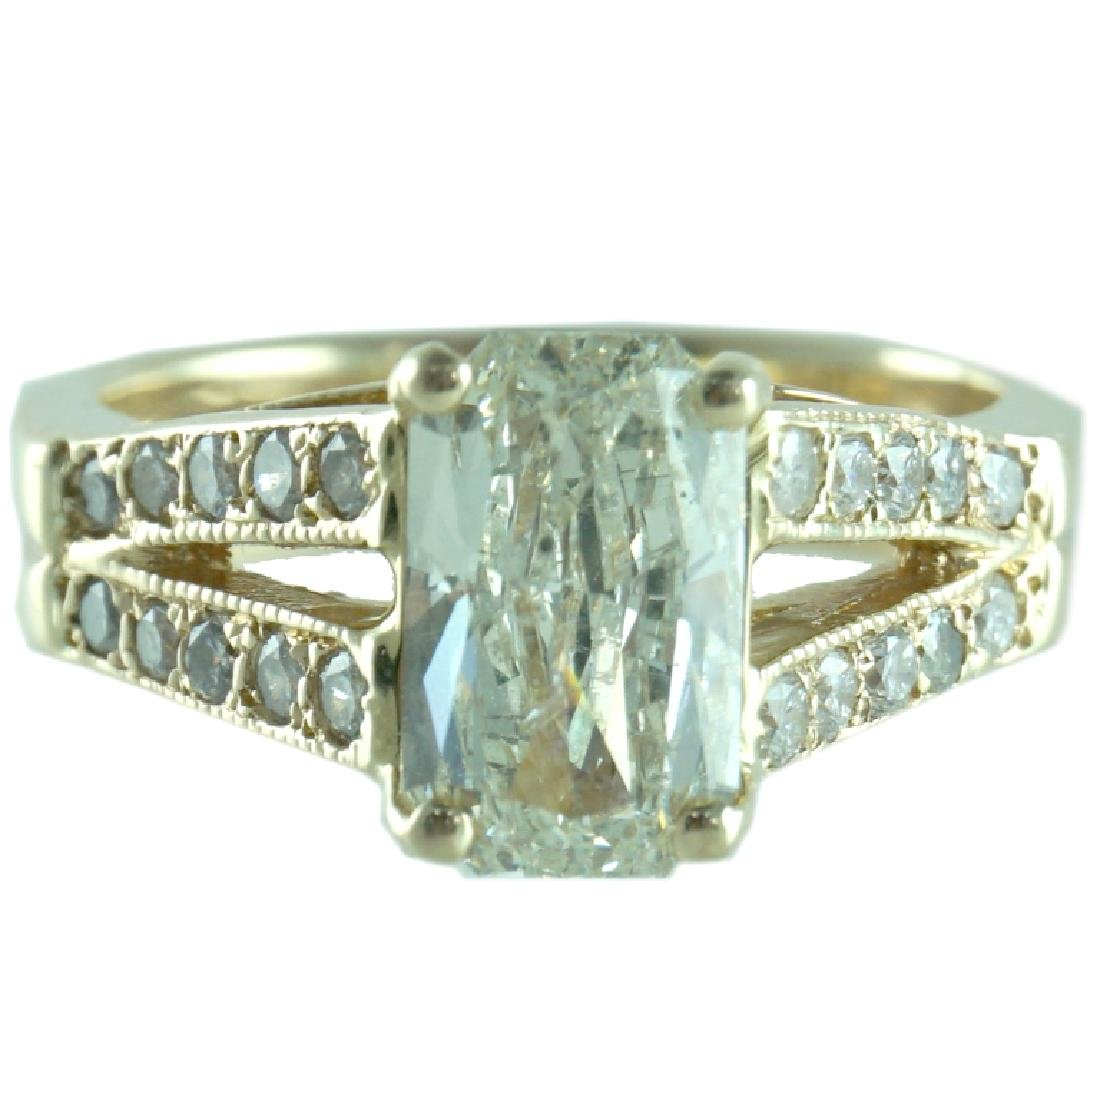 EGL Certified, 2.51 TCW Radiant Engagement Ring.